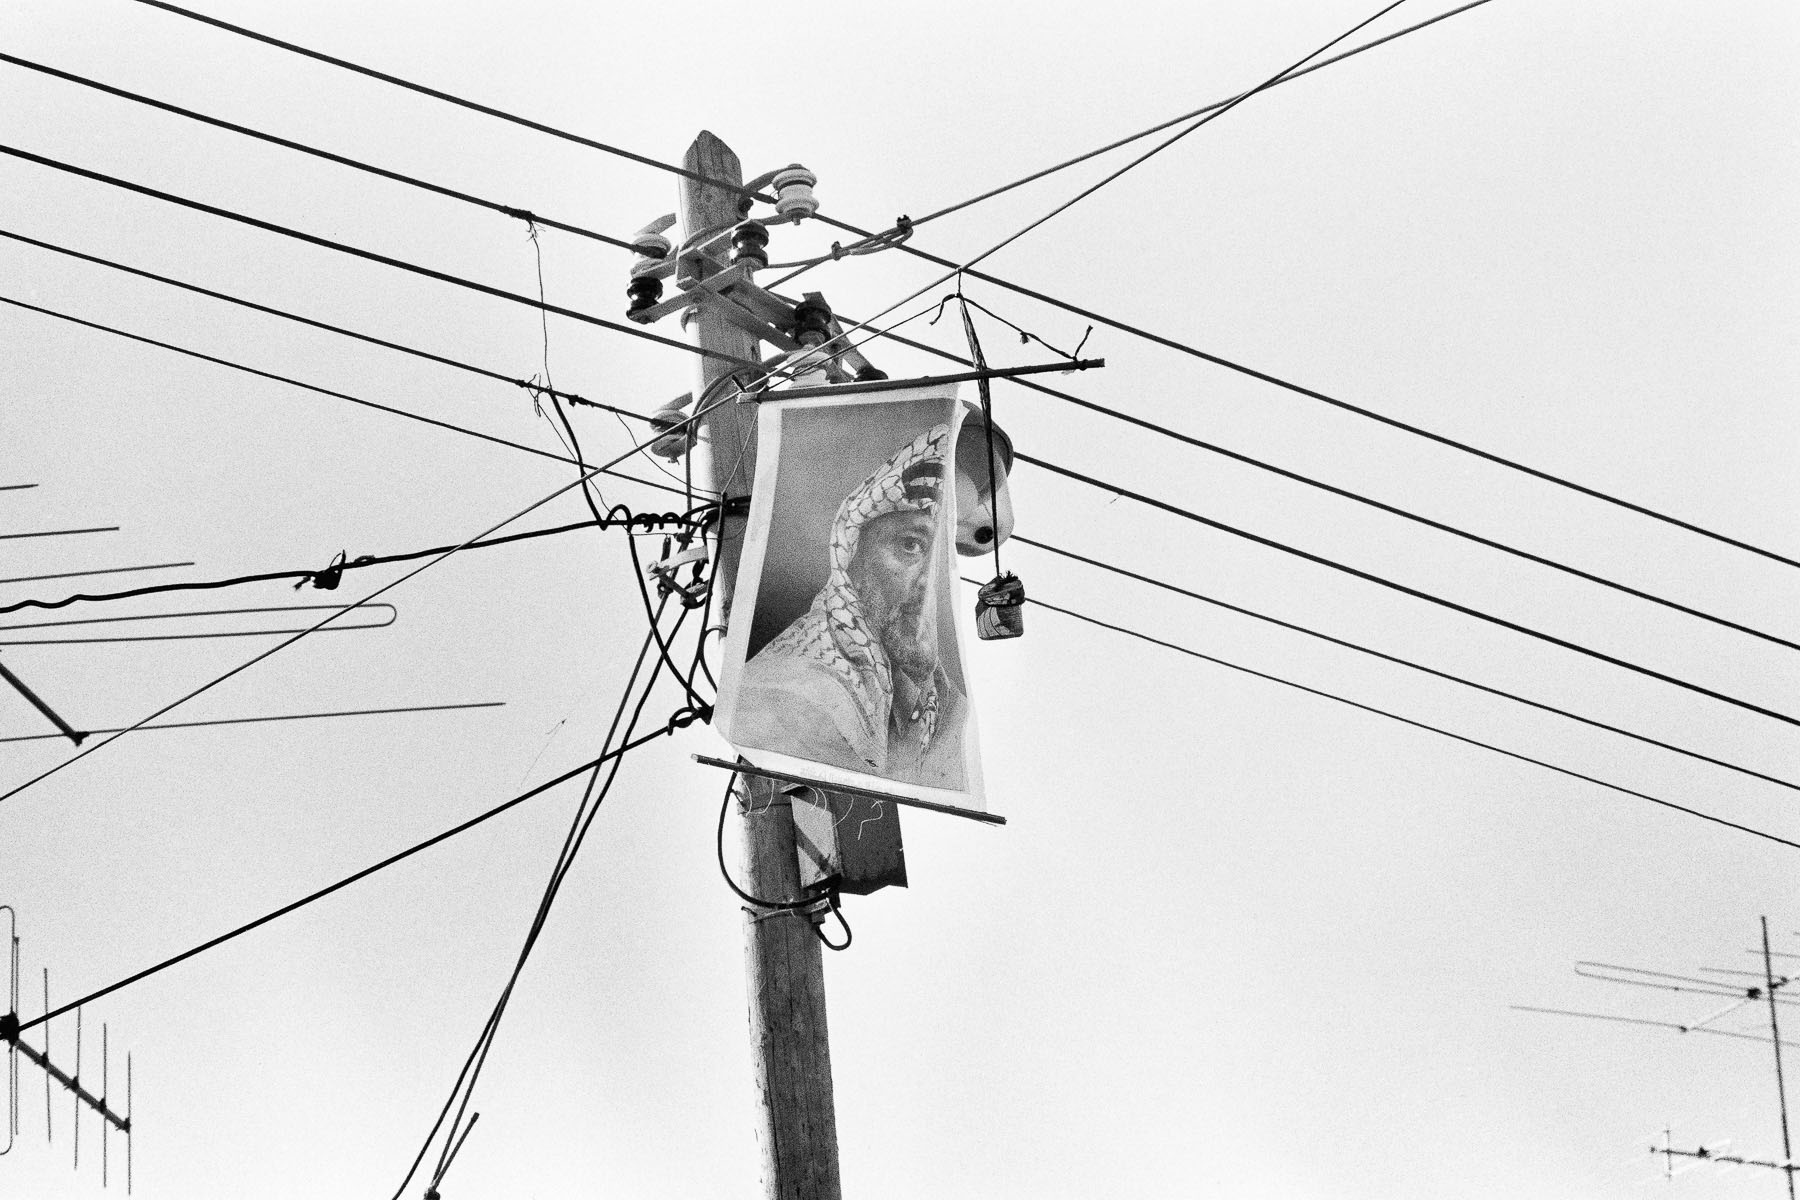 Yasser Arafat's portrait hung on electric wires in January 1988